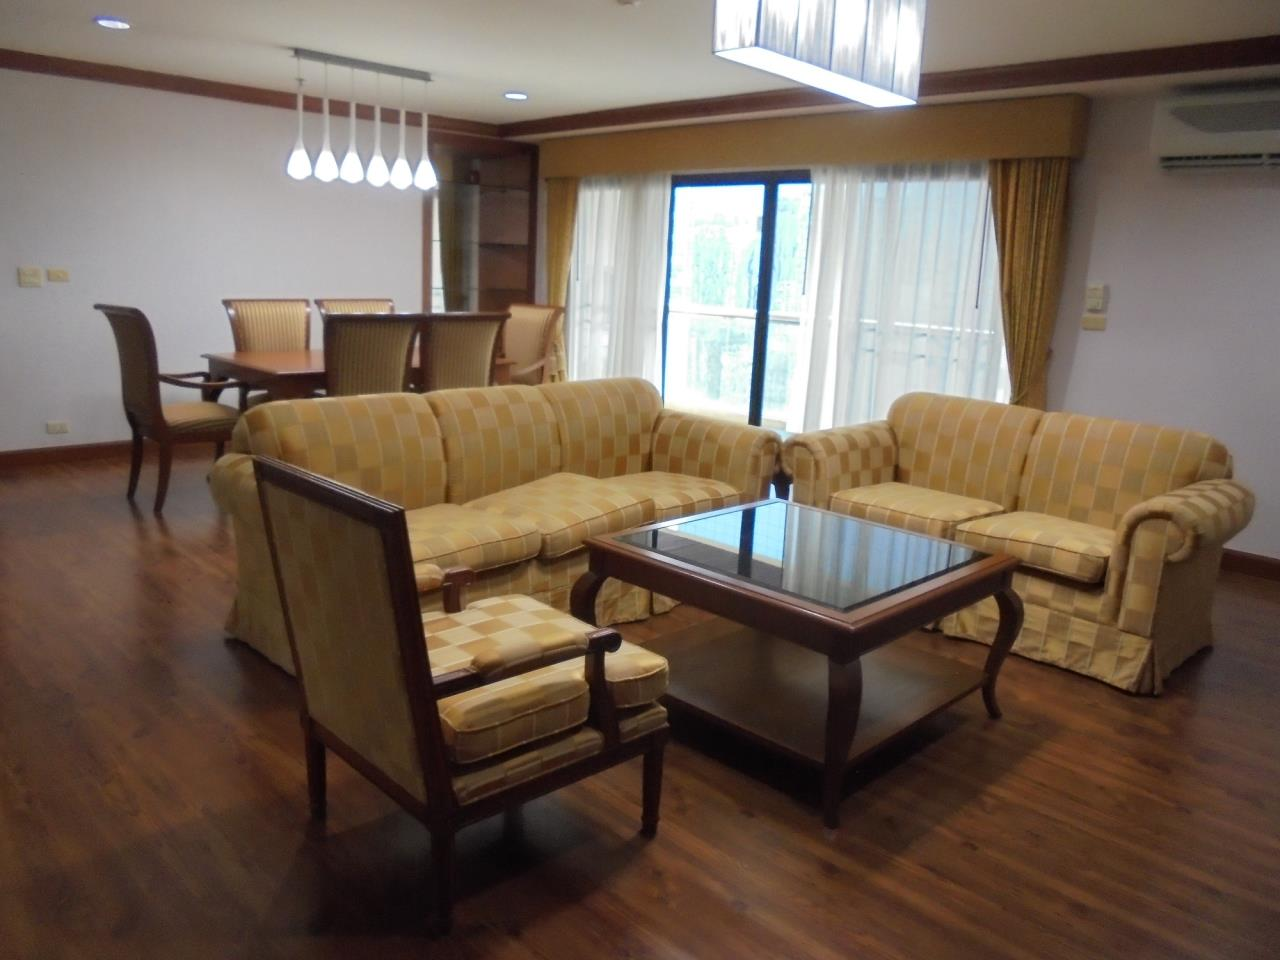 RE/MAX CondoDee Agency's Penthouse for Rent in Asoke - Quite & Central Location 11